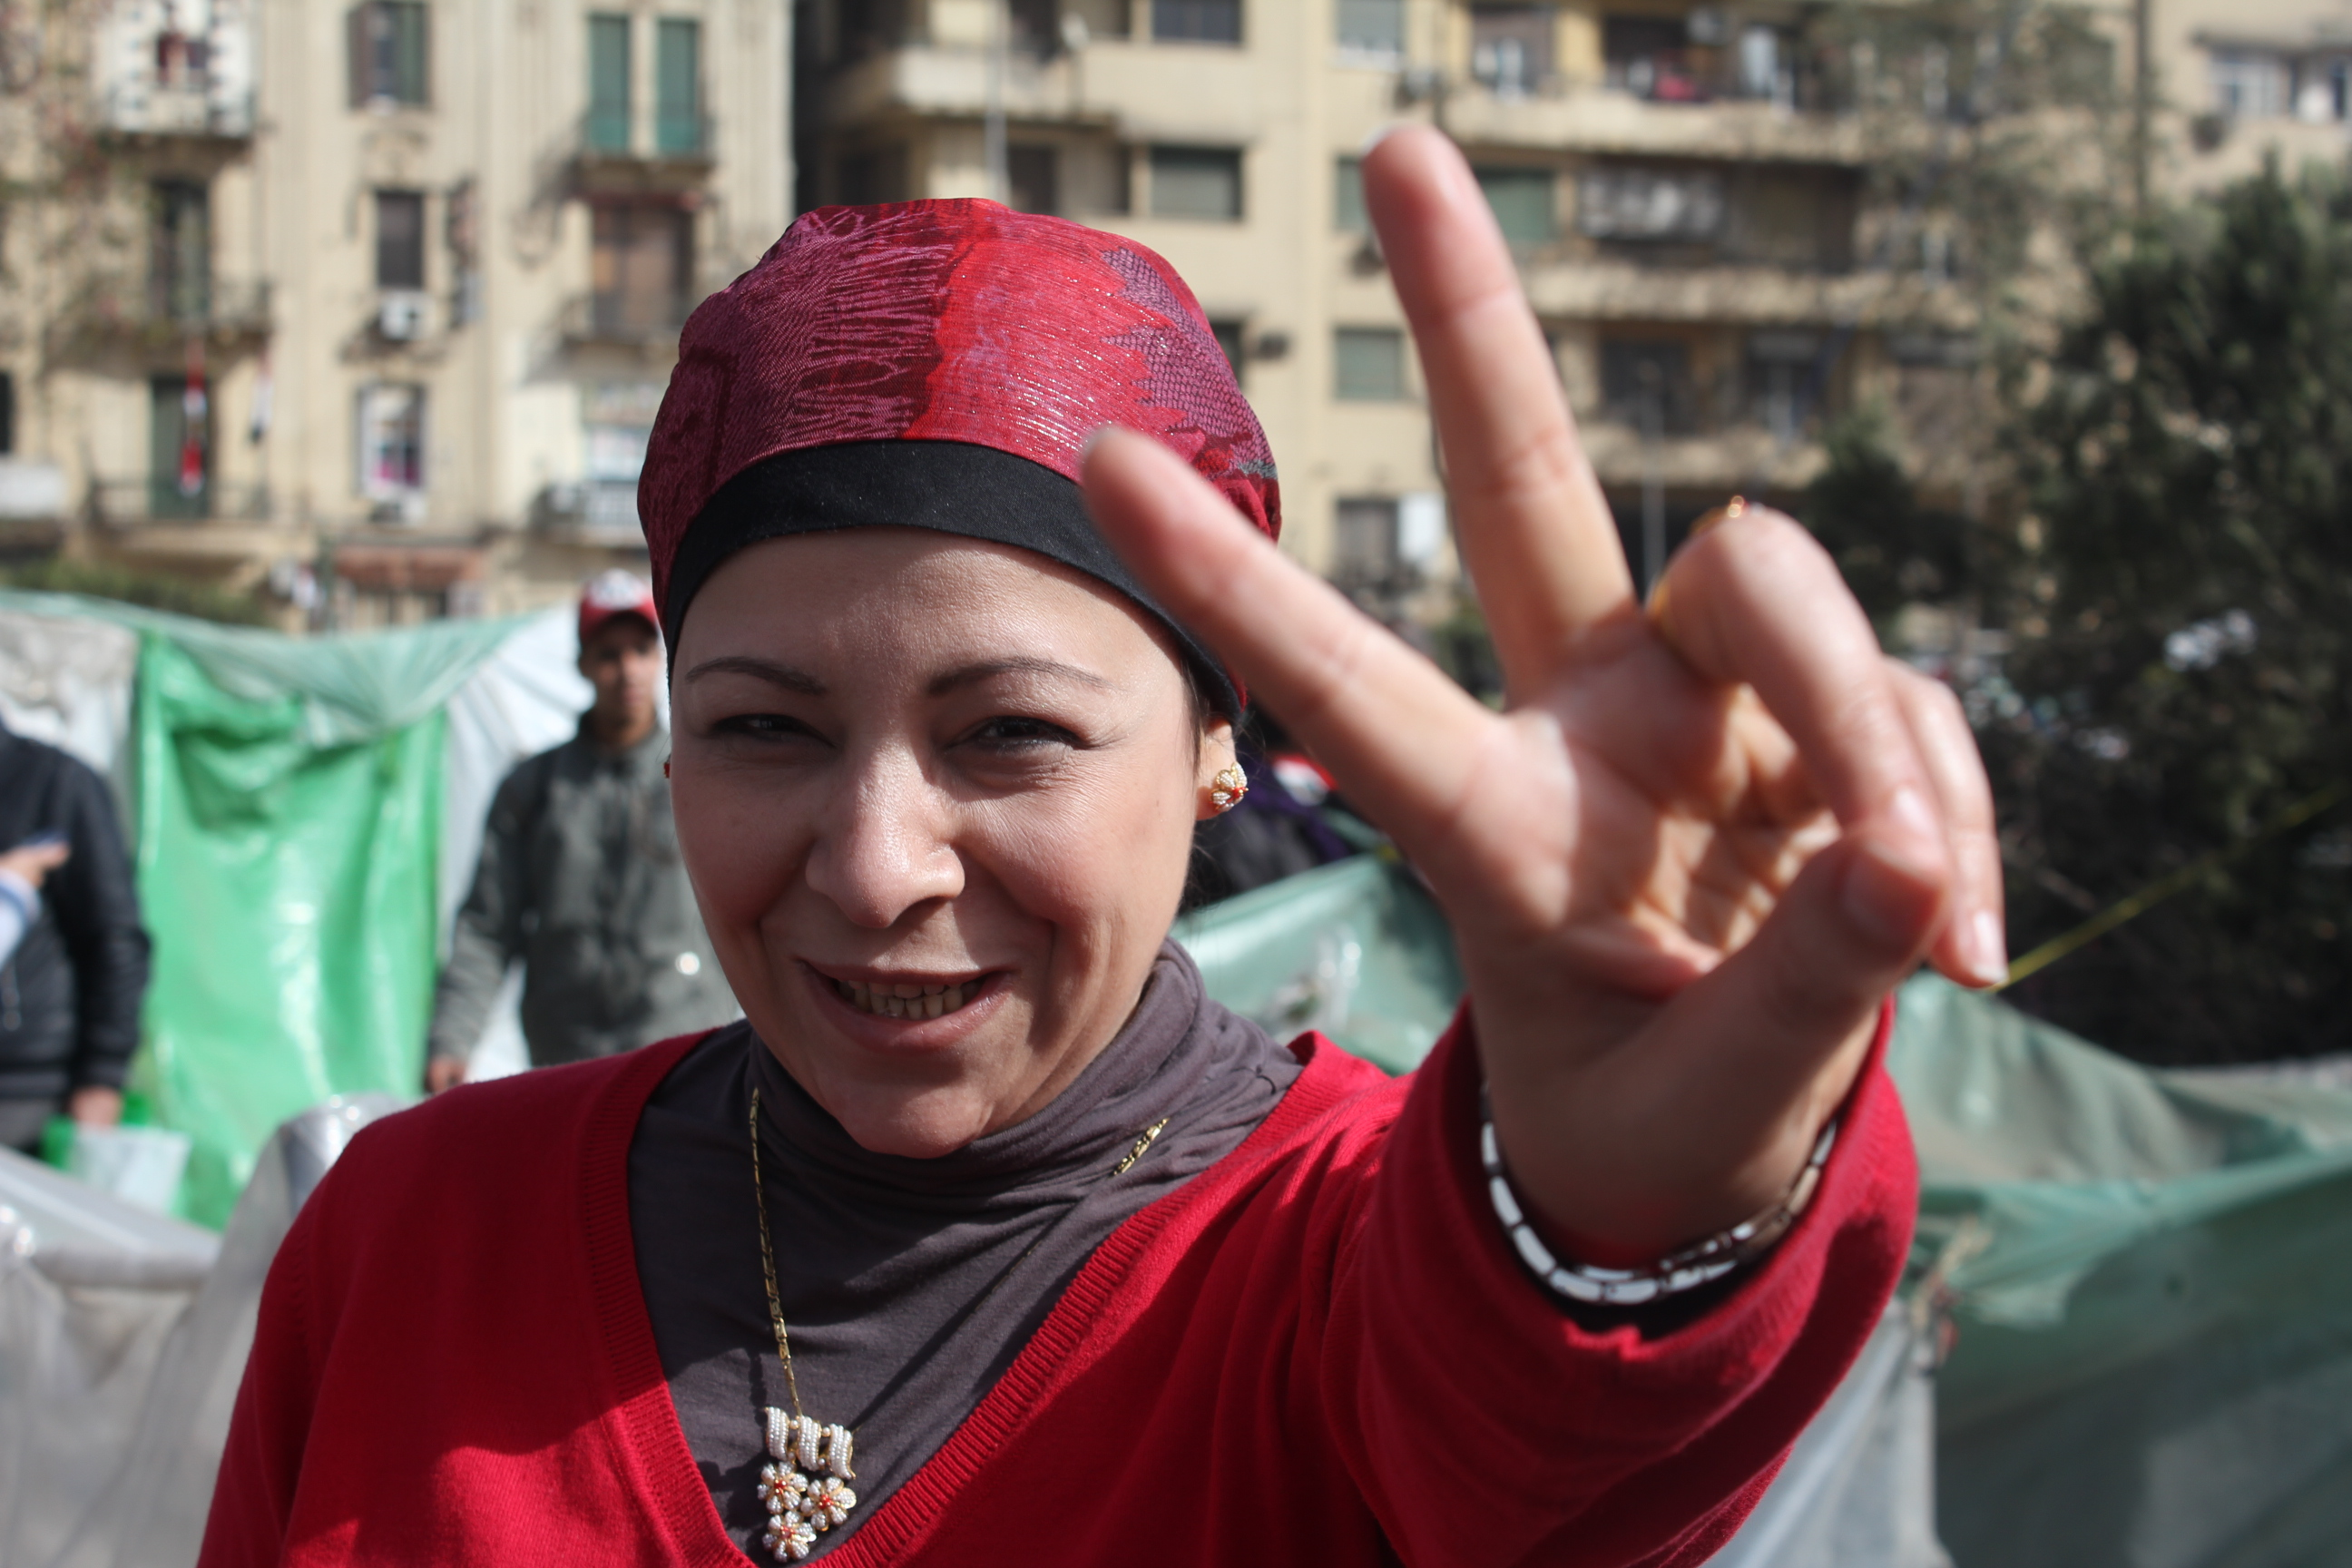 International_Women's_Day_in_Egypt_-_Flickr_-_Al_Jazeera_English_(106)